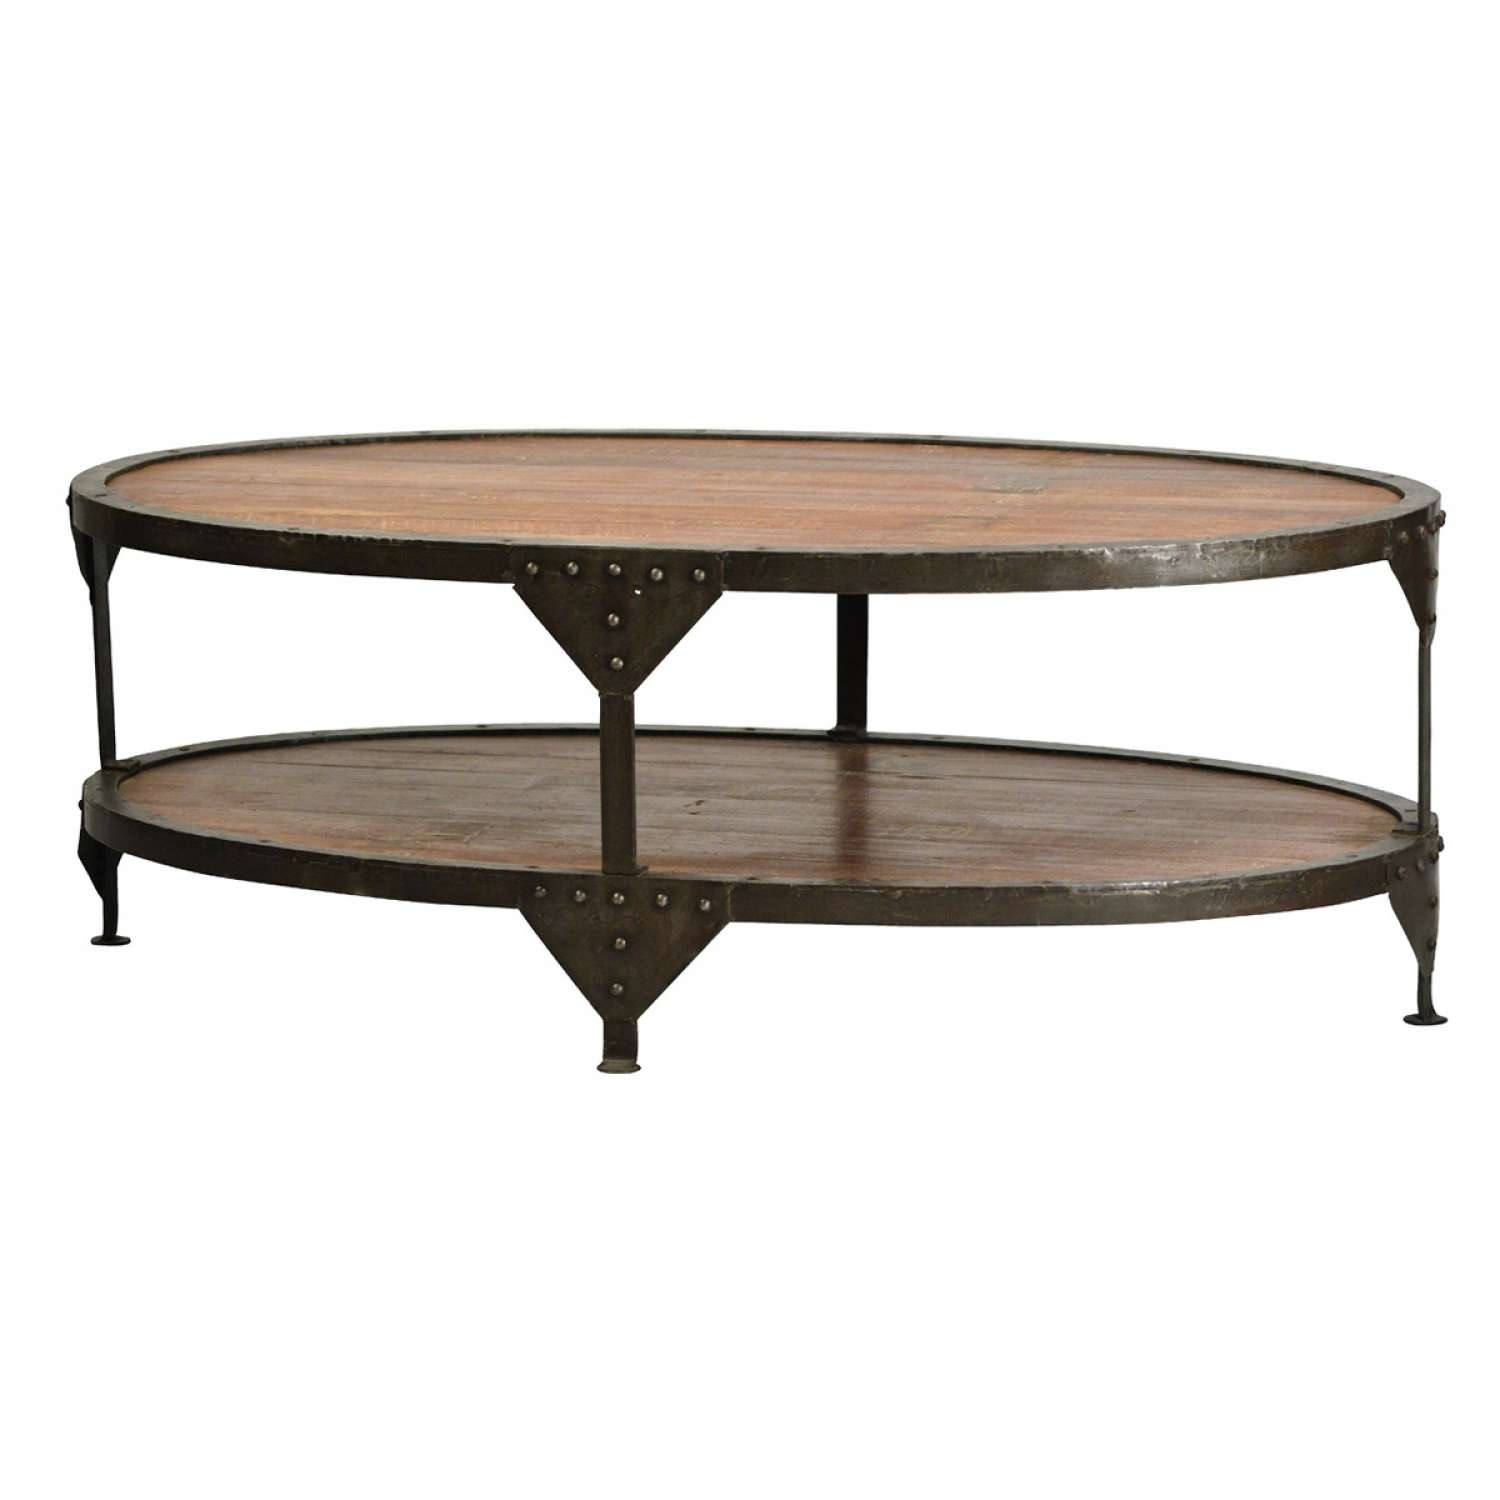 Famous Oval Wood Coffee Tables Within Coffee Tables : Oval Wood Coffee Table Fresh Round Wooden With (View 18 of 20)